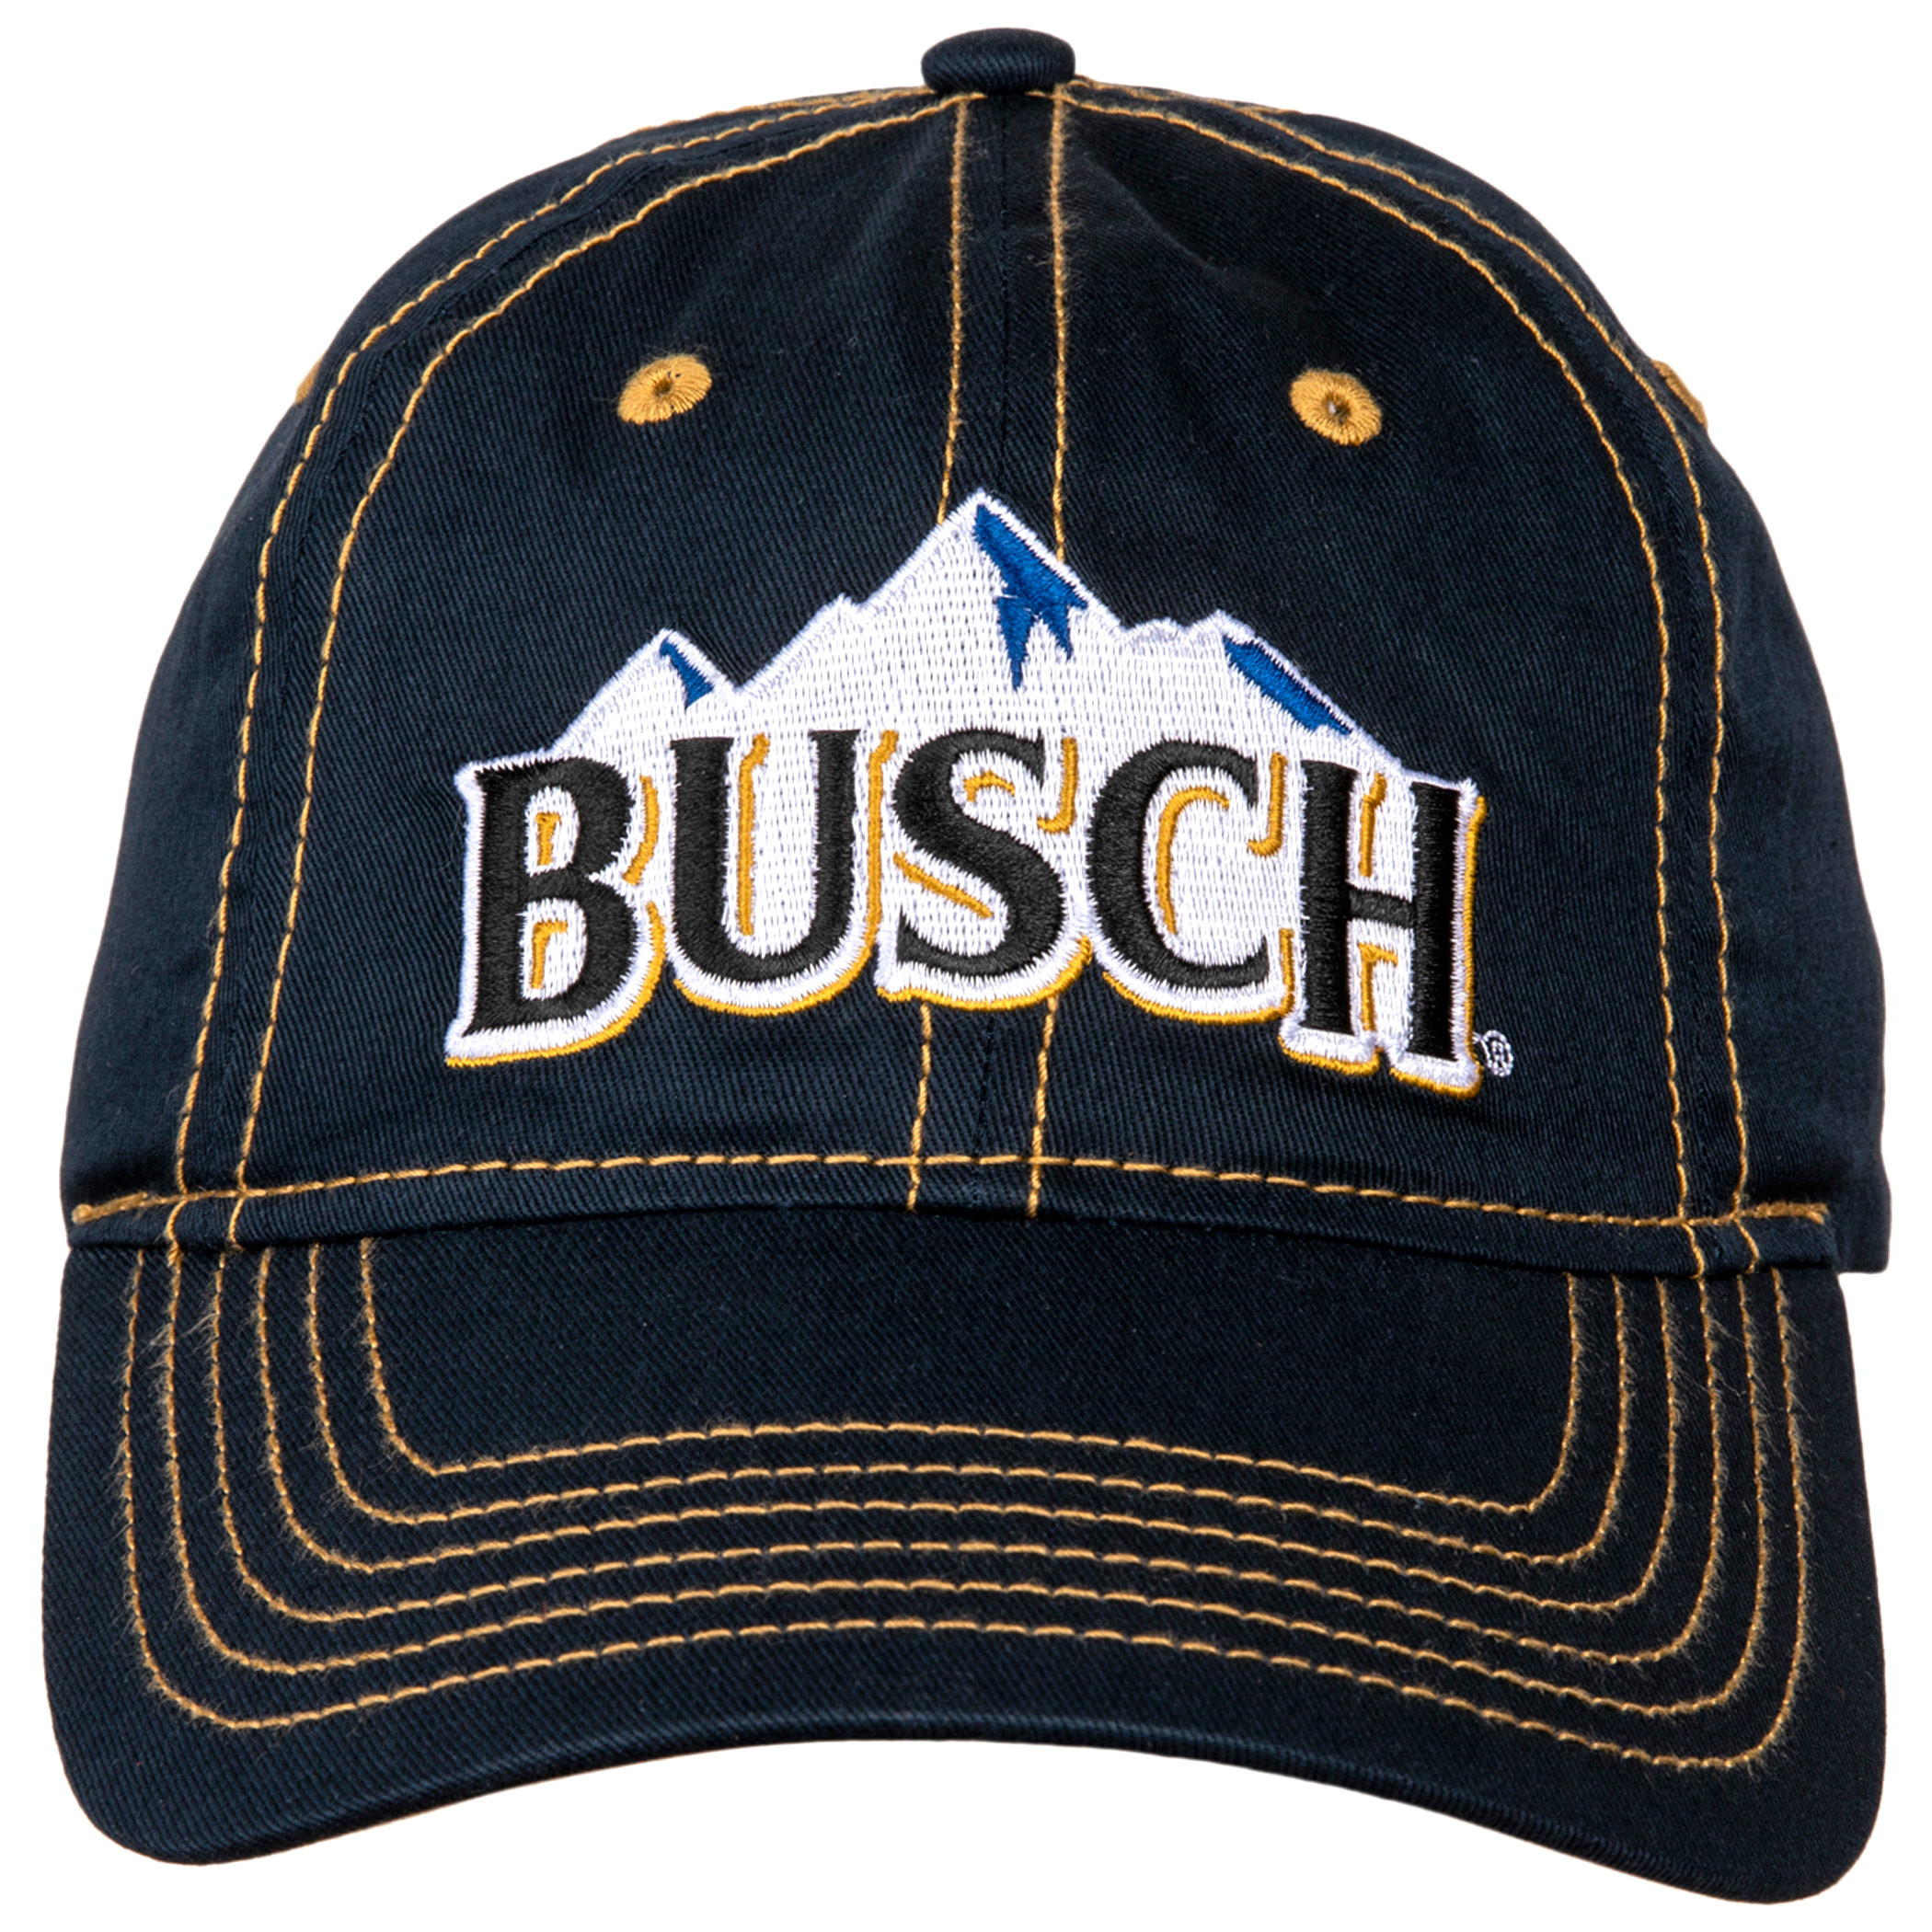 Busch Beer Logo Adjustable Velcro Hat